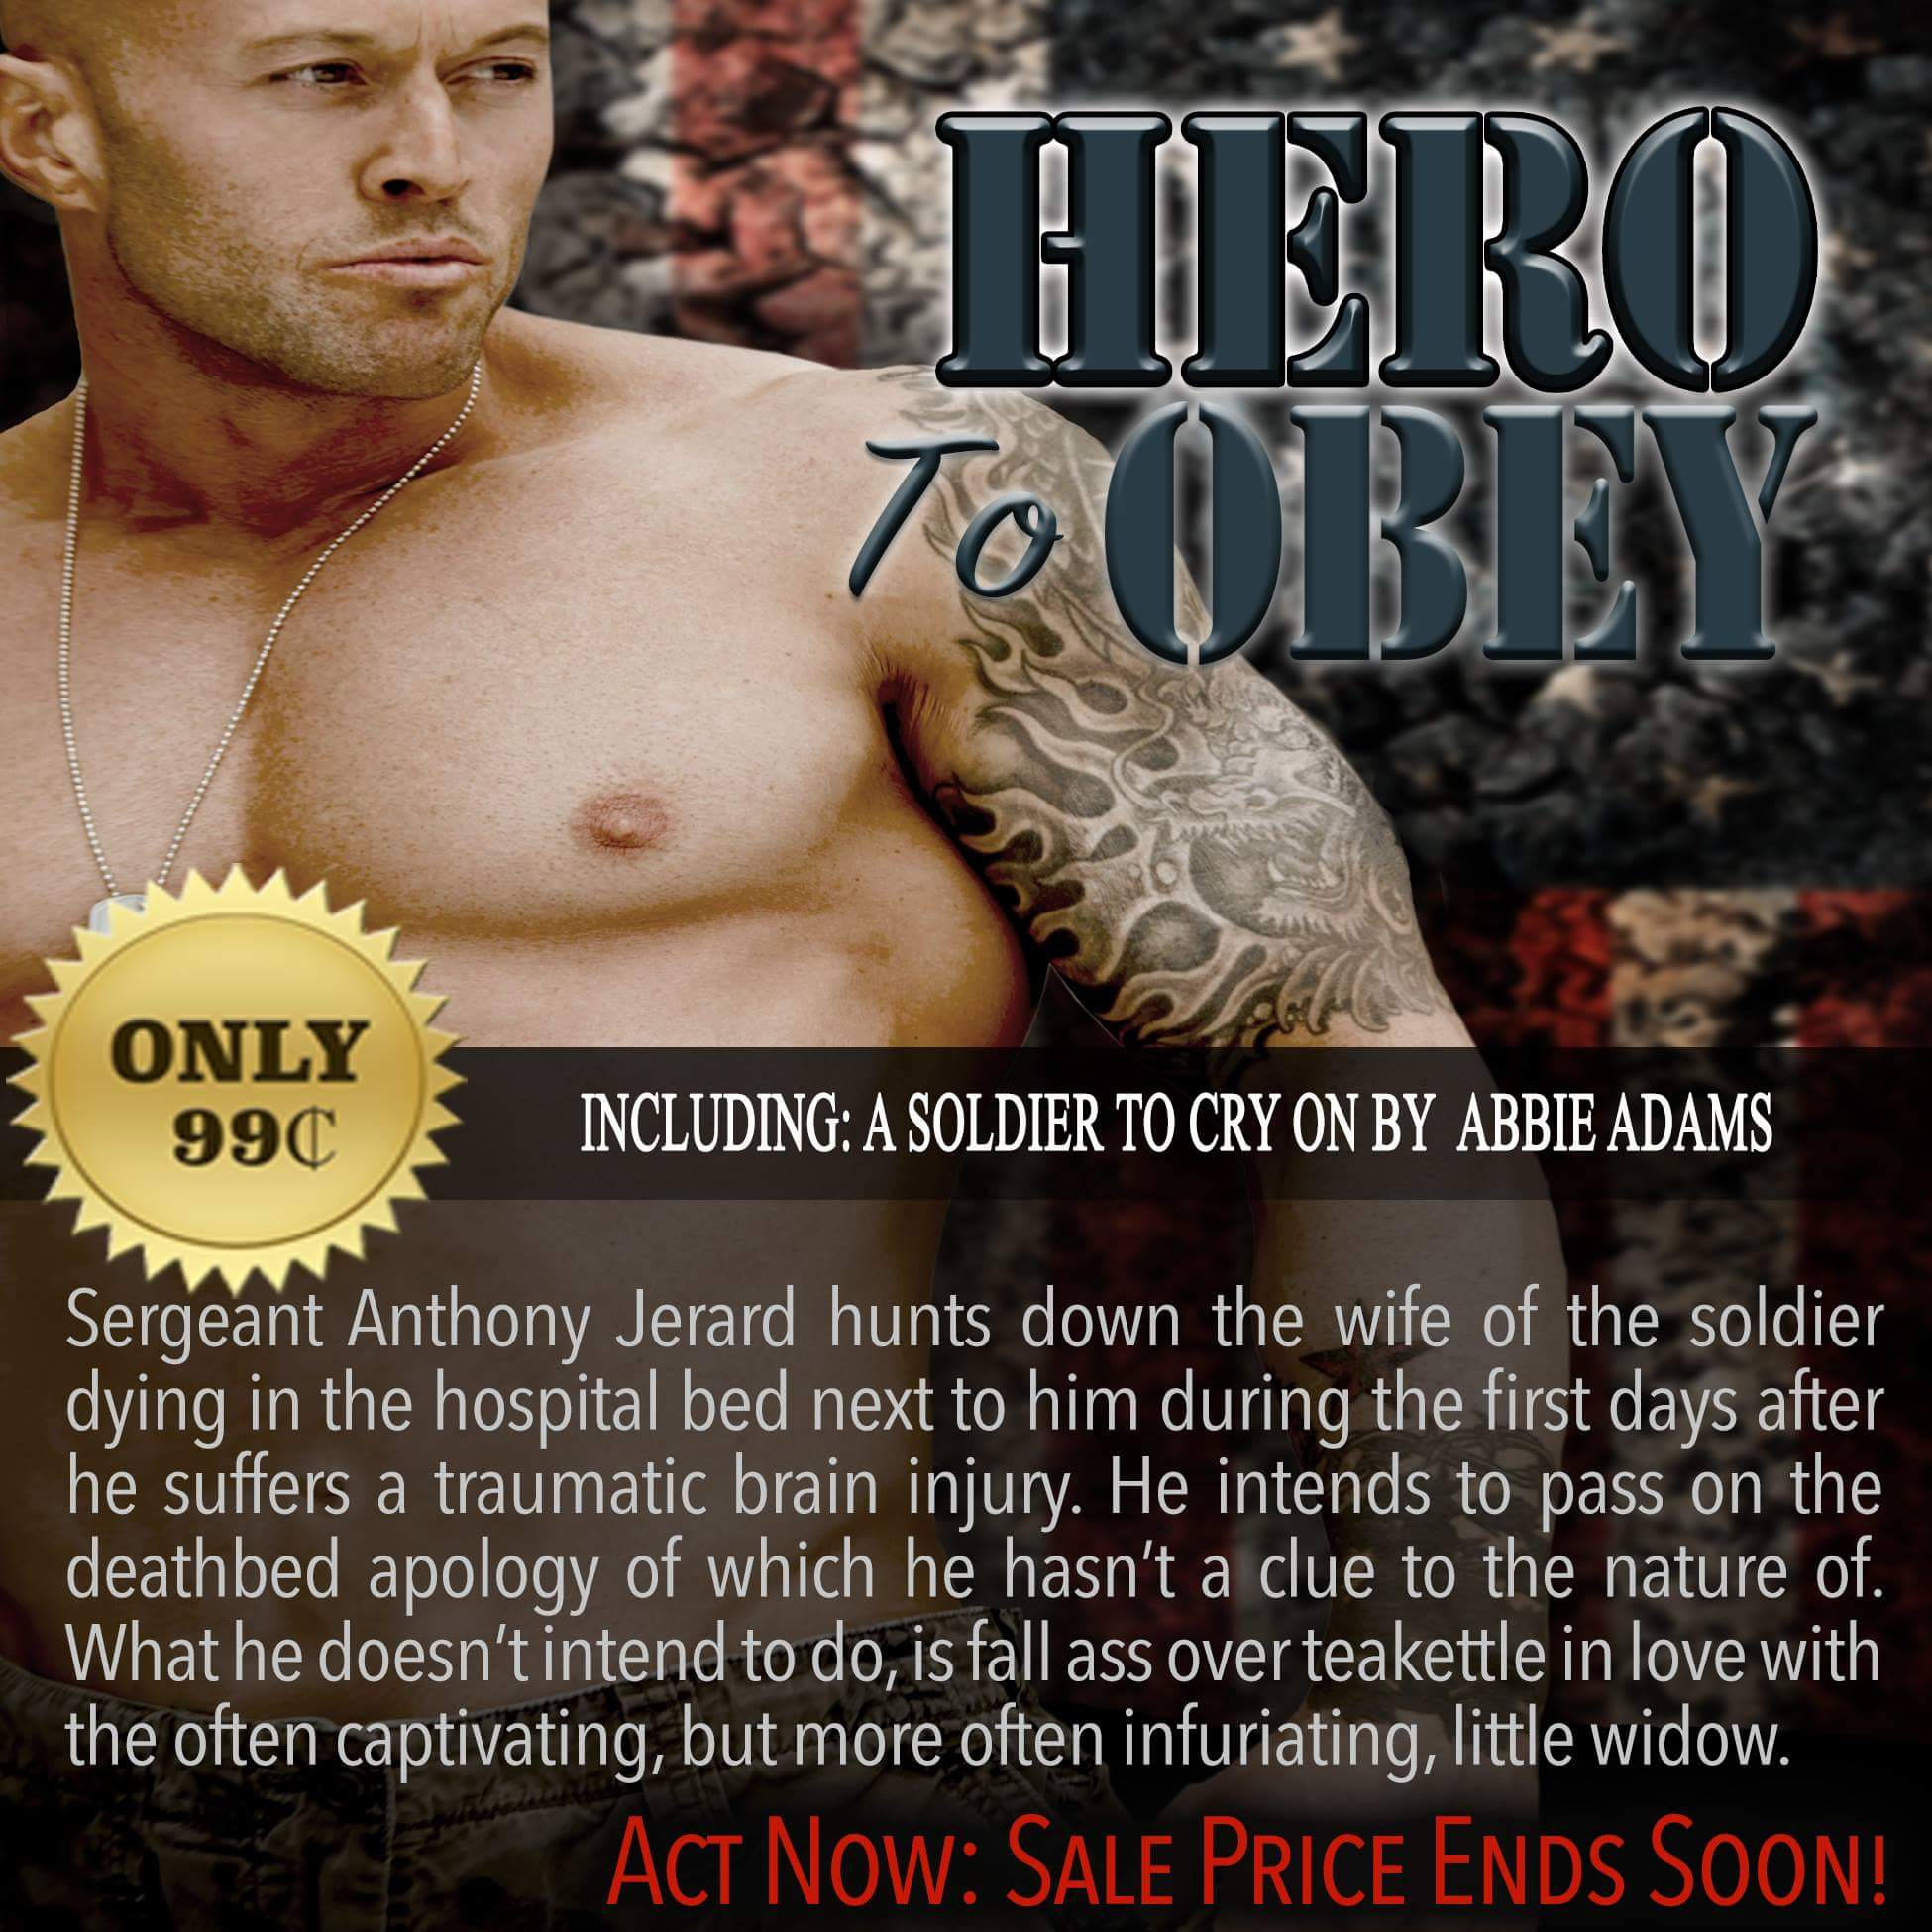 Hero To Obey Book Cover Model Actor John Joseph Quinlan by Abbie Adams #JohnQuinlan #Hero2obey